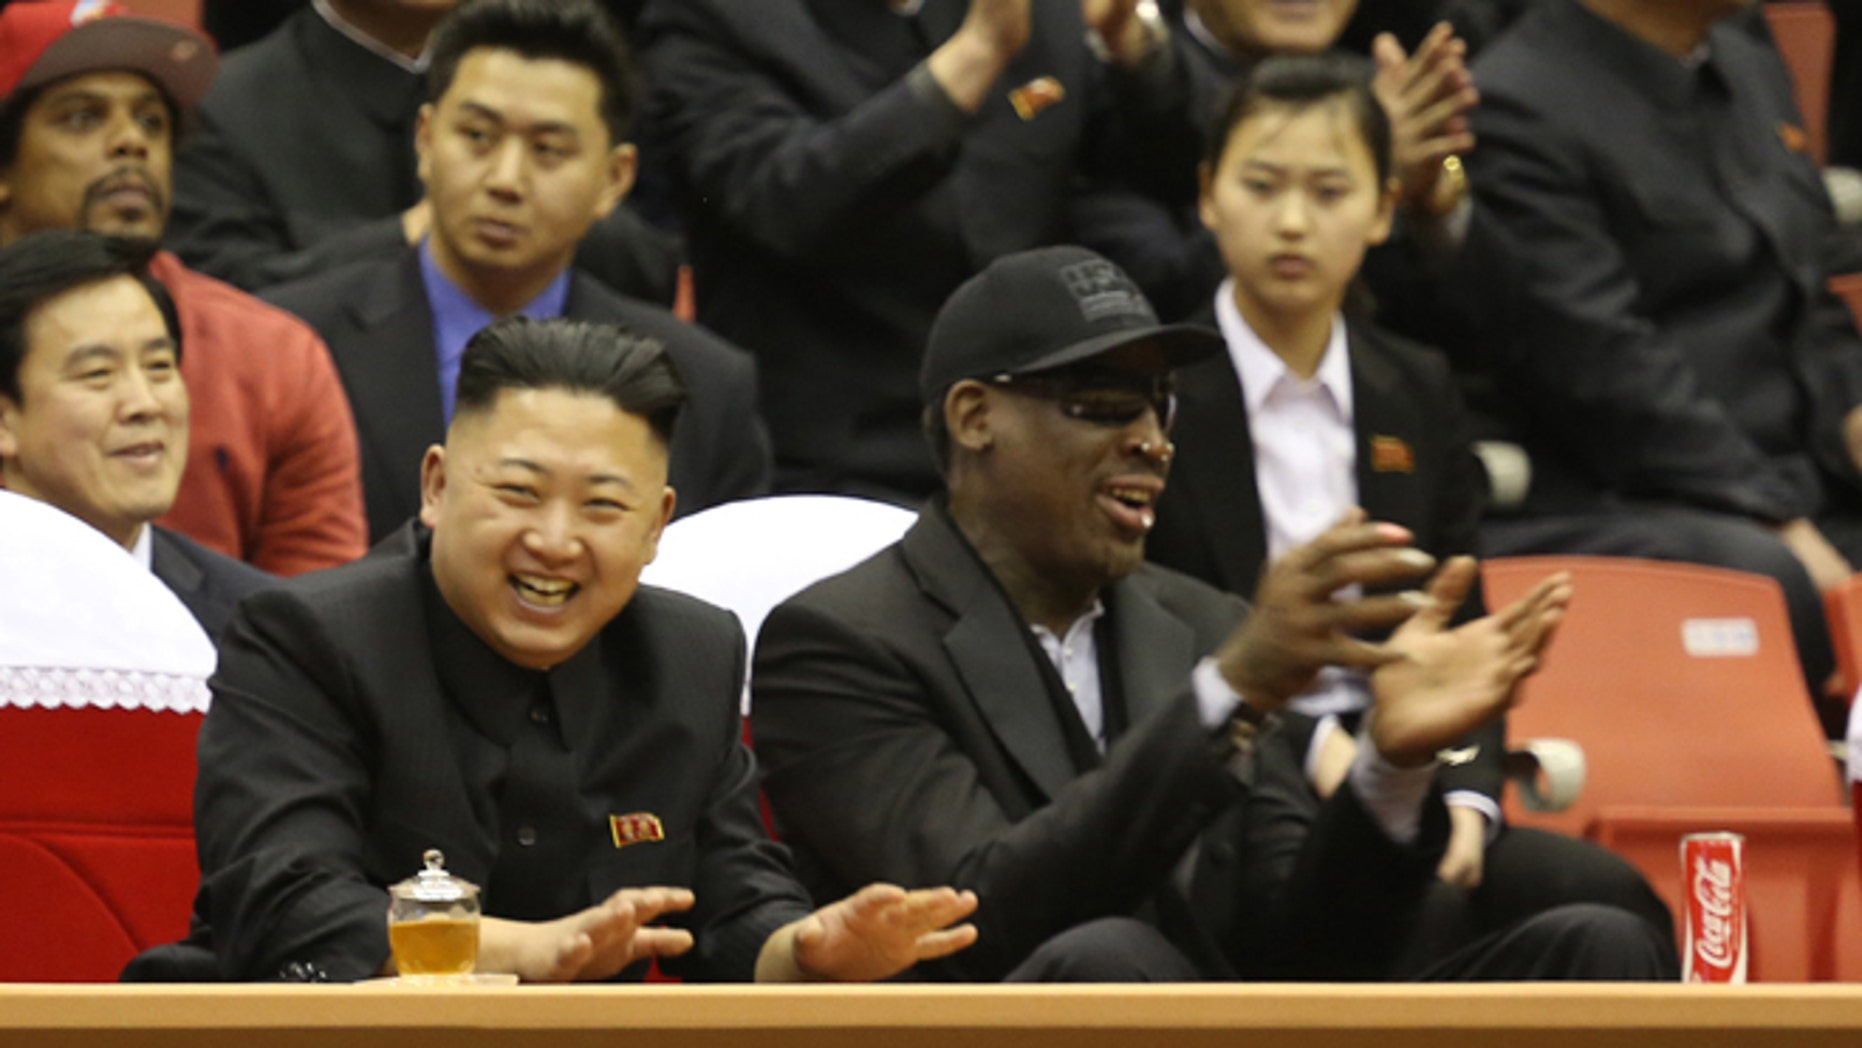 Feb. 28, 2013: North Korean leader Kim Jong Un, left, and former NBA star Dennis Rodman watch North Korean and U.S. players in an exhibition basketball game at an arena in Pyongyang, North Korea.